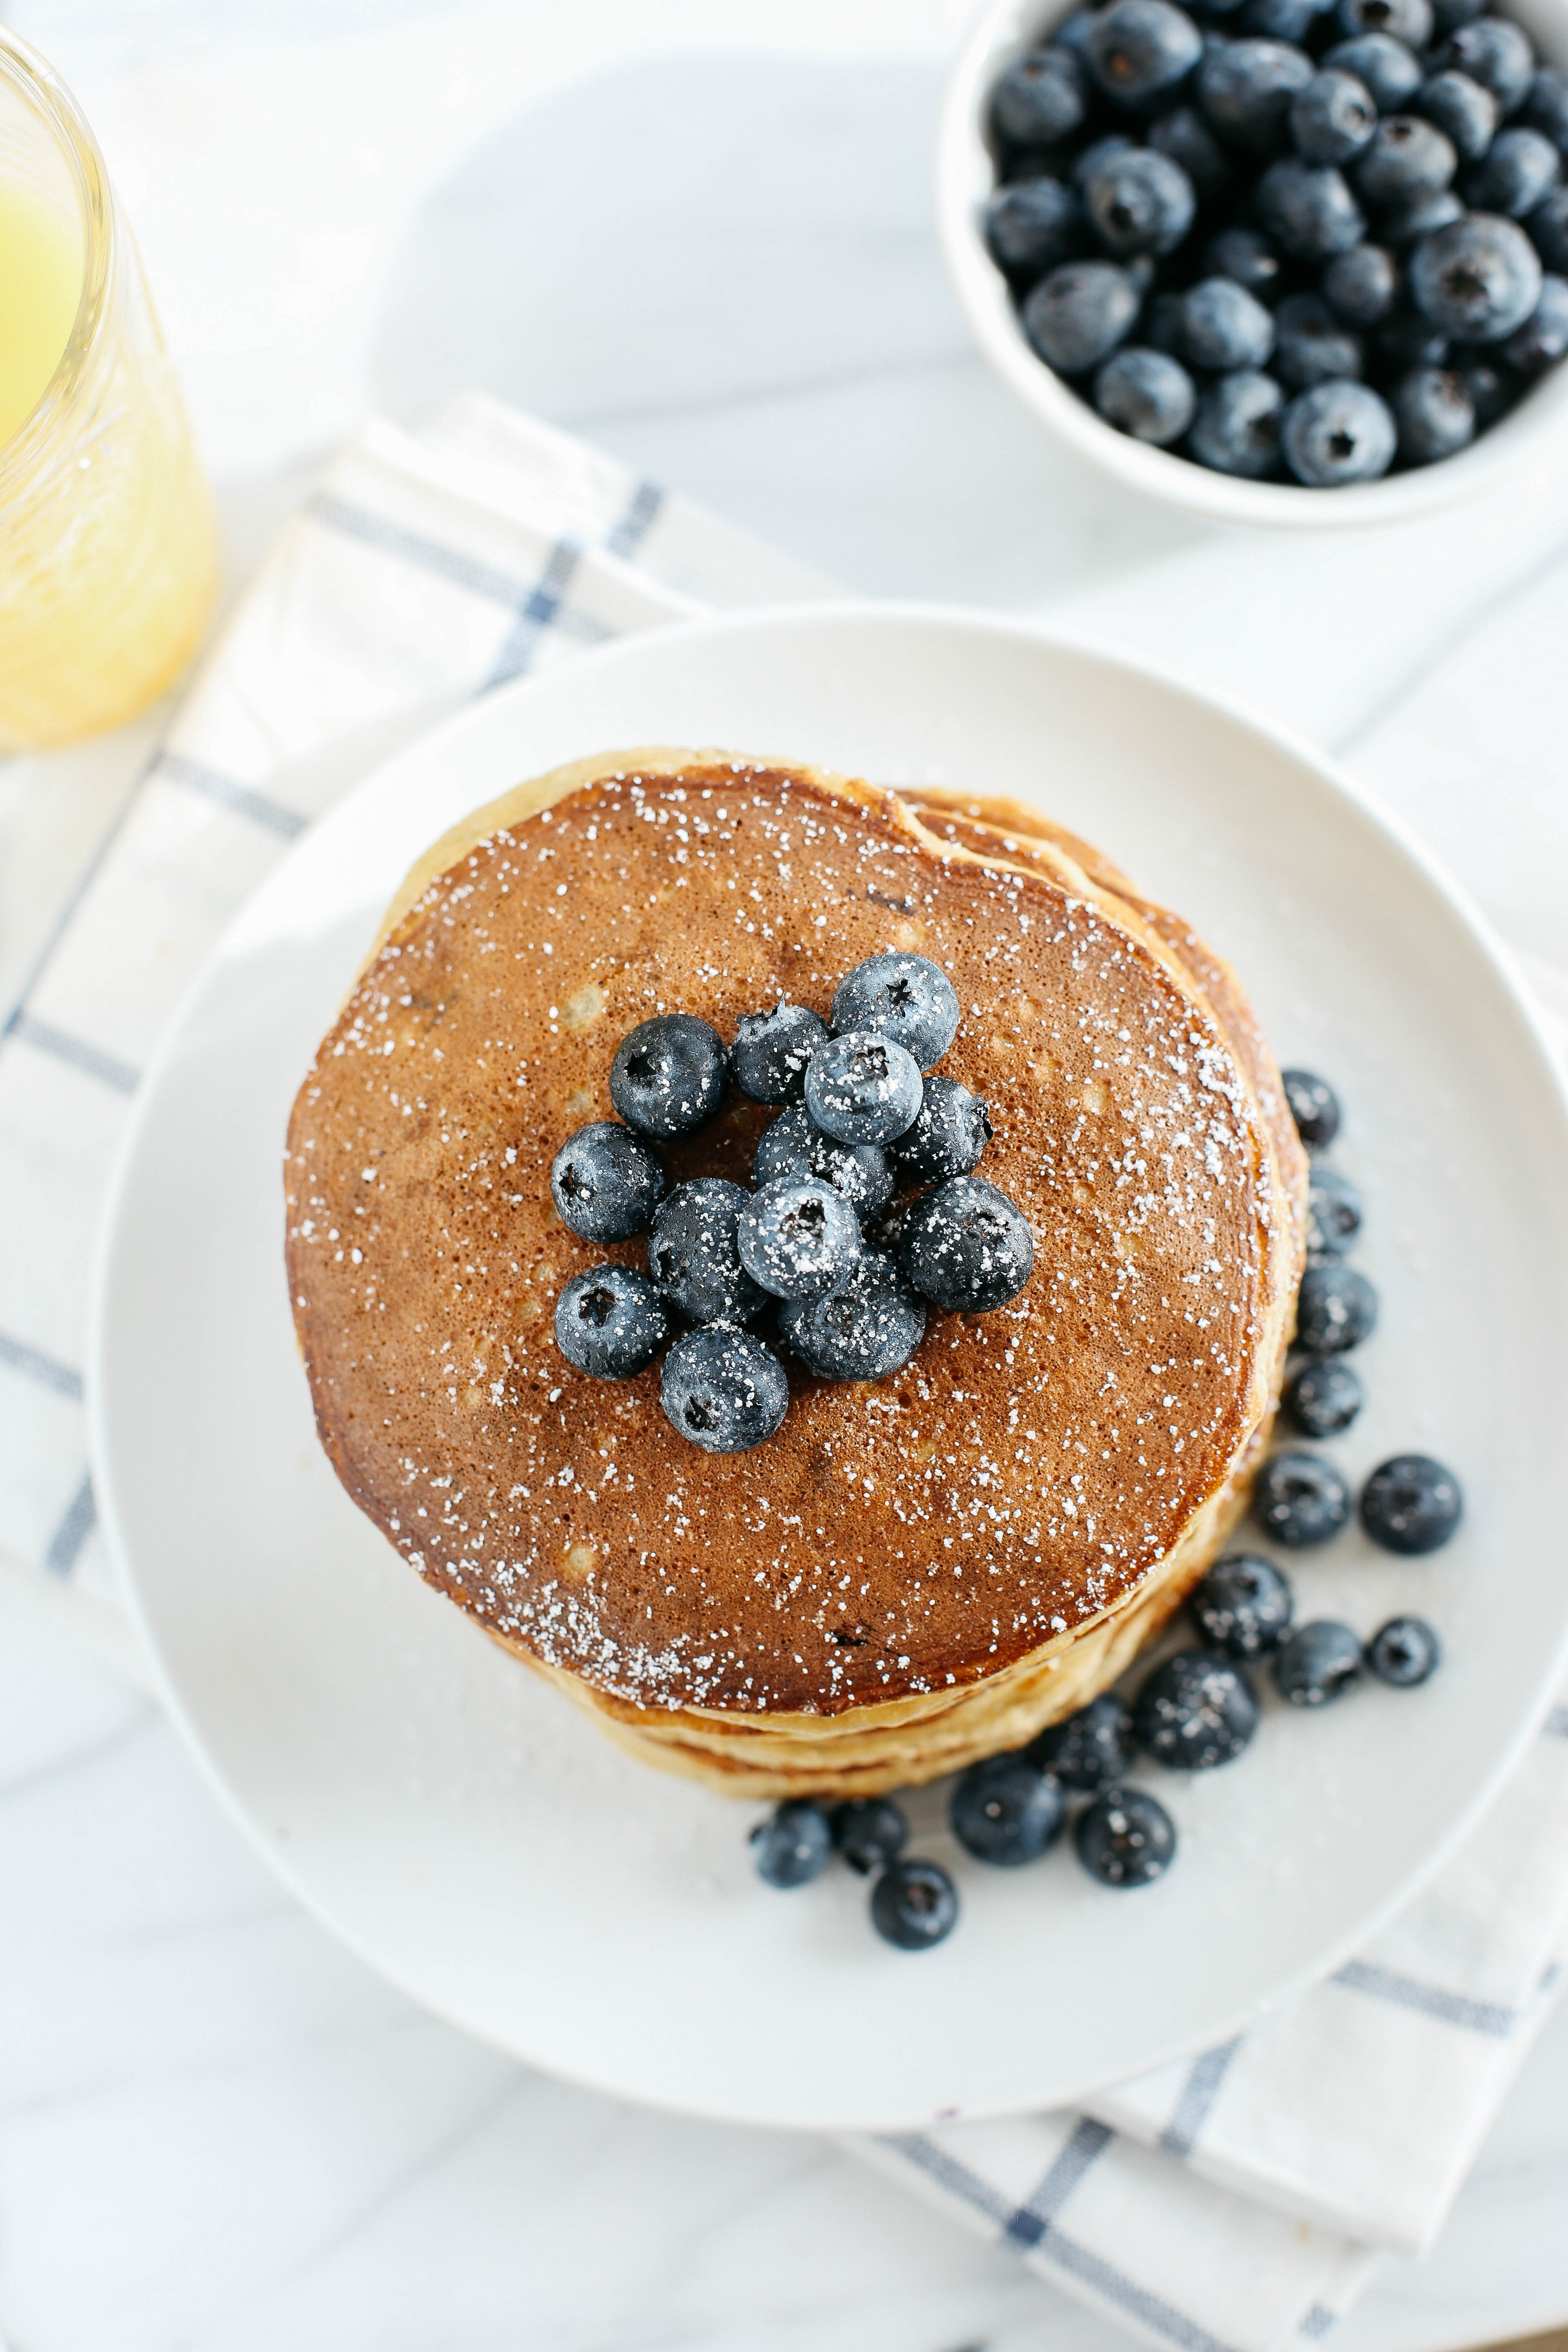 Start your morning with these fluffy blueberry banana pancakes that are grain-free, gluten-free and refined sugar-free and made with almond flour for an easy delicious breakfast!